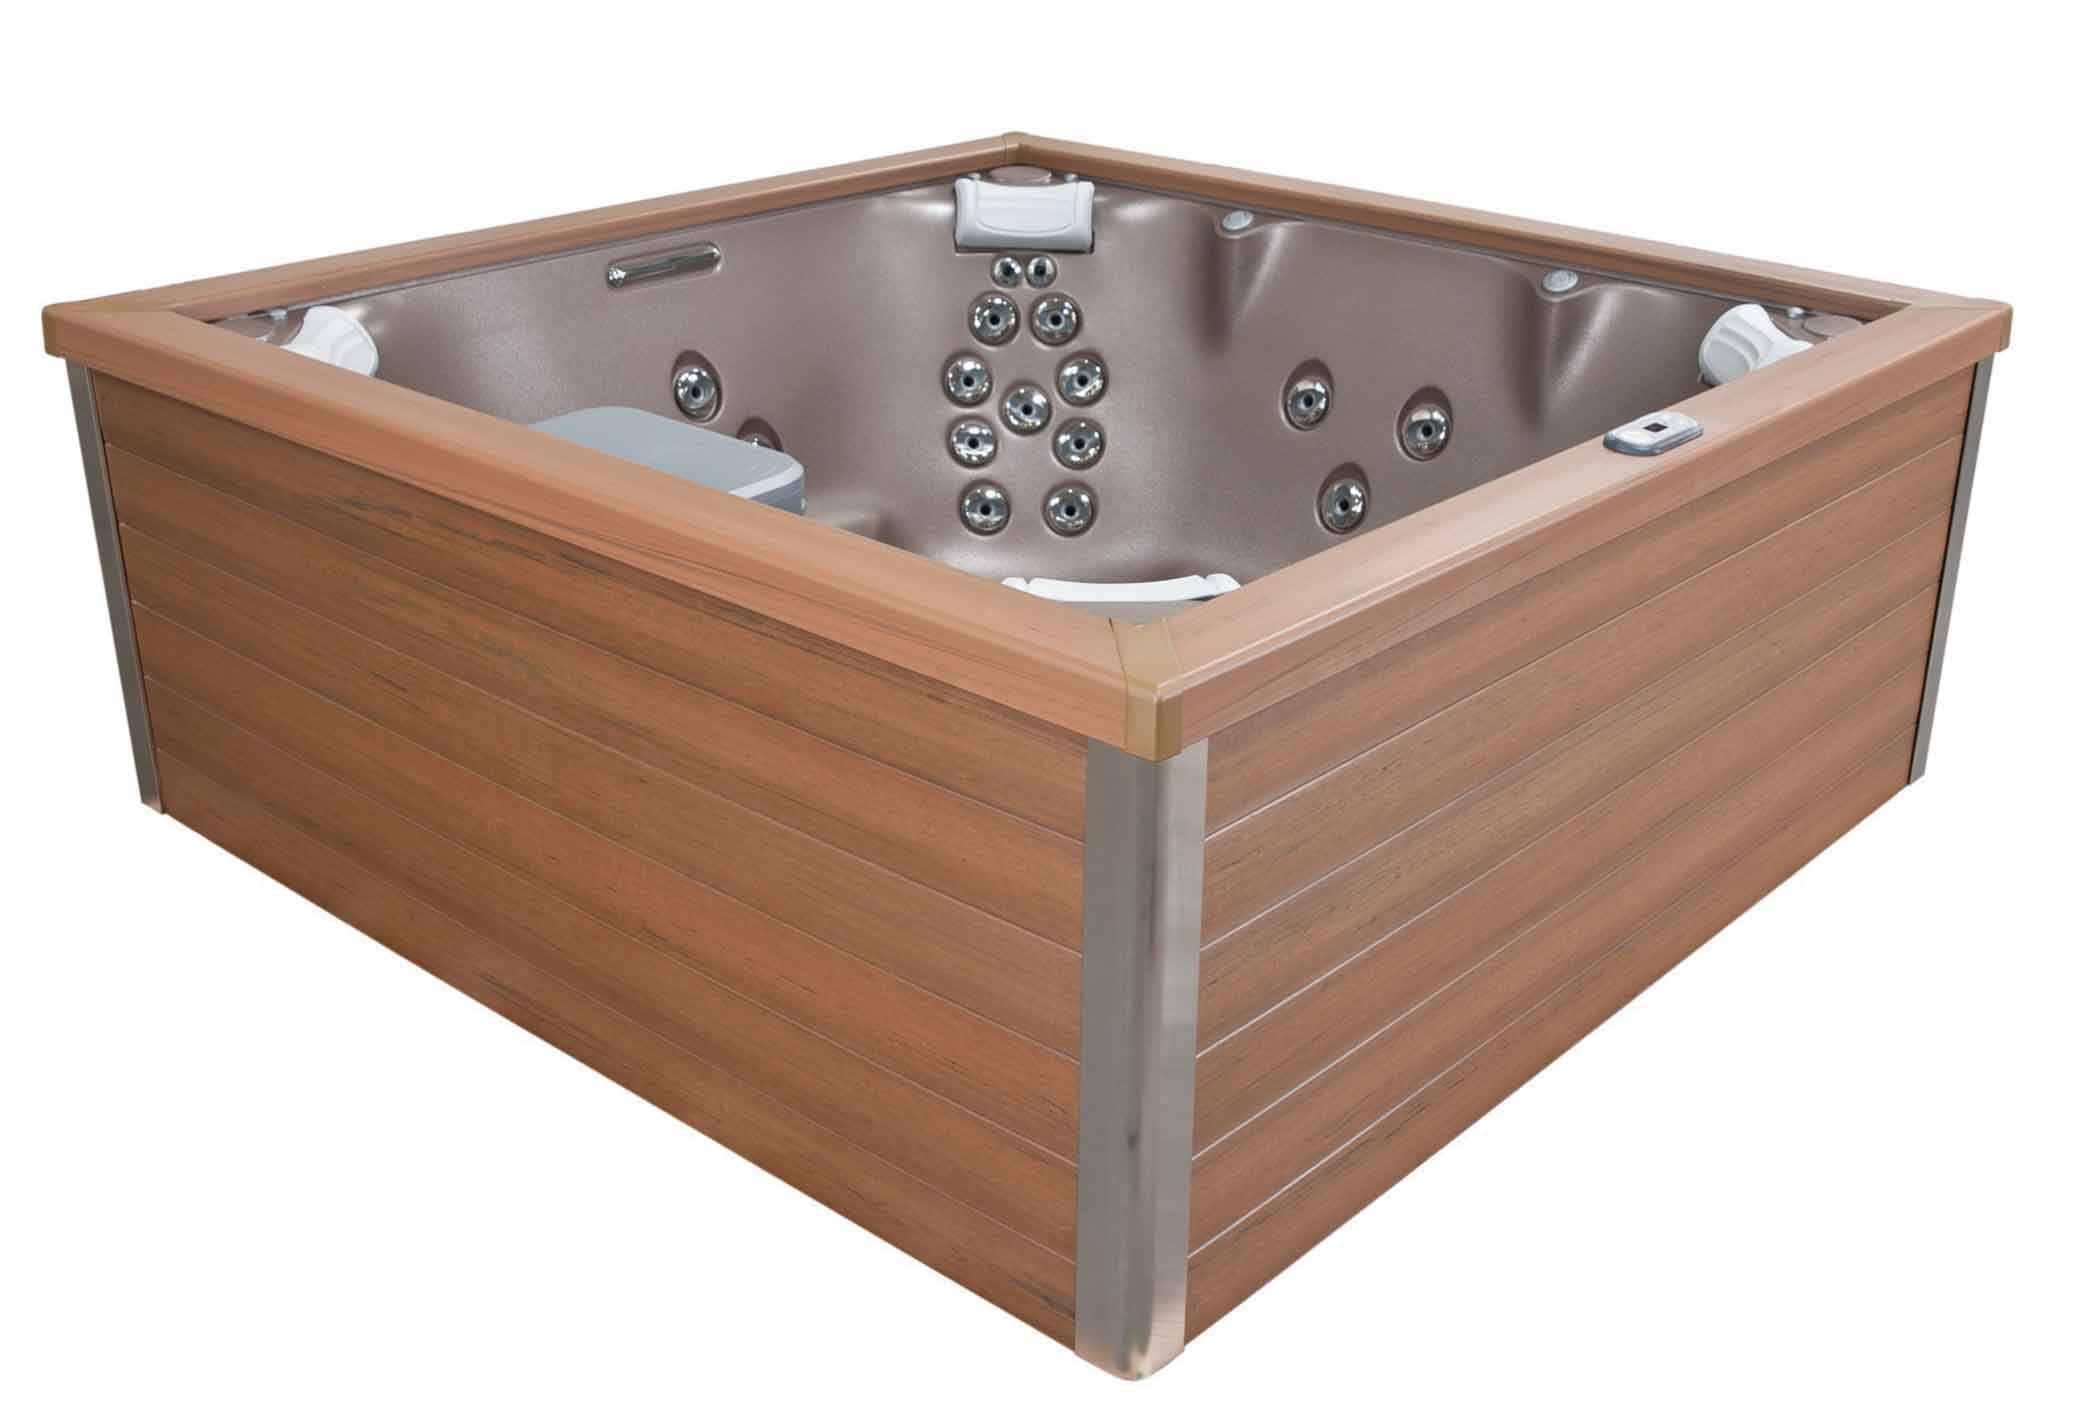 J-LX® hot tub in Manitoba